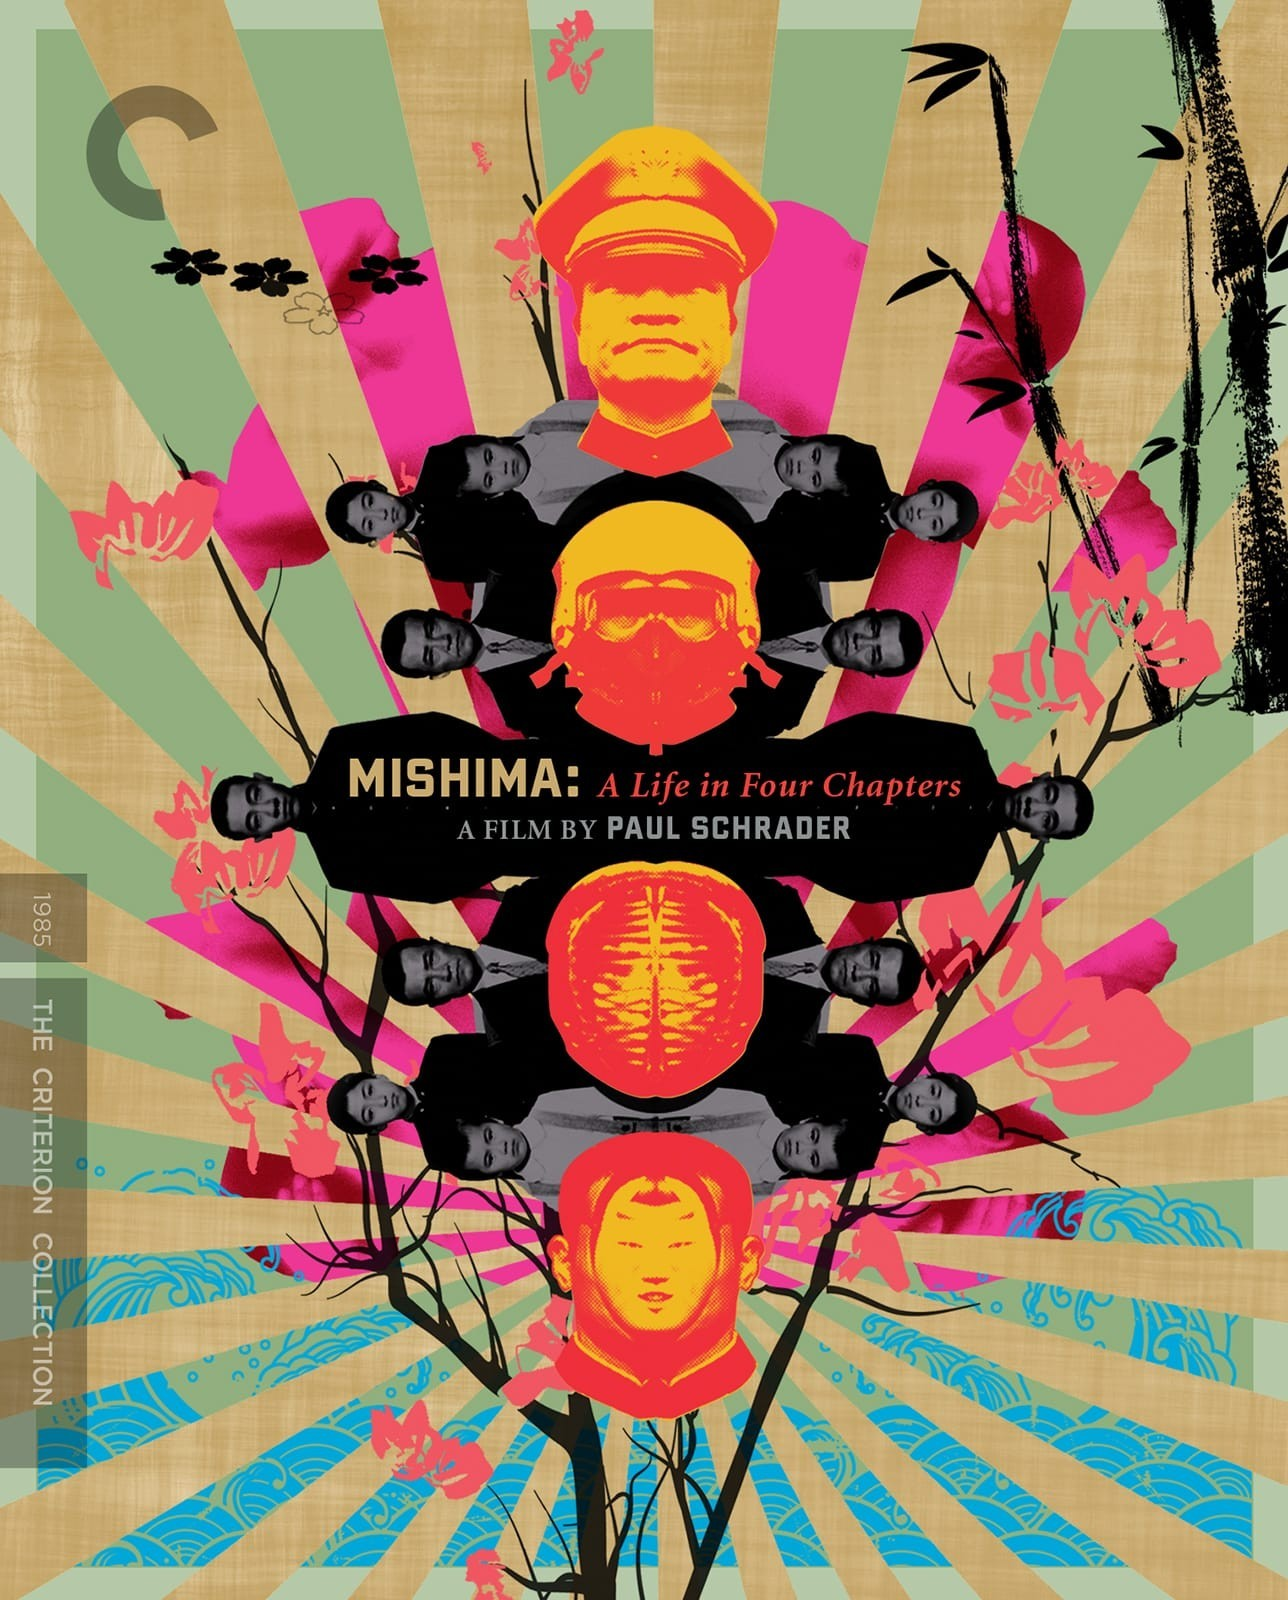 Mishima: A Life in Four Chapters (The Criterion Collection)(1985) Blu-ray